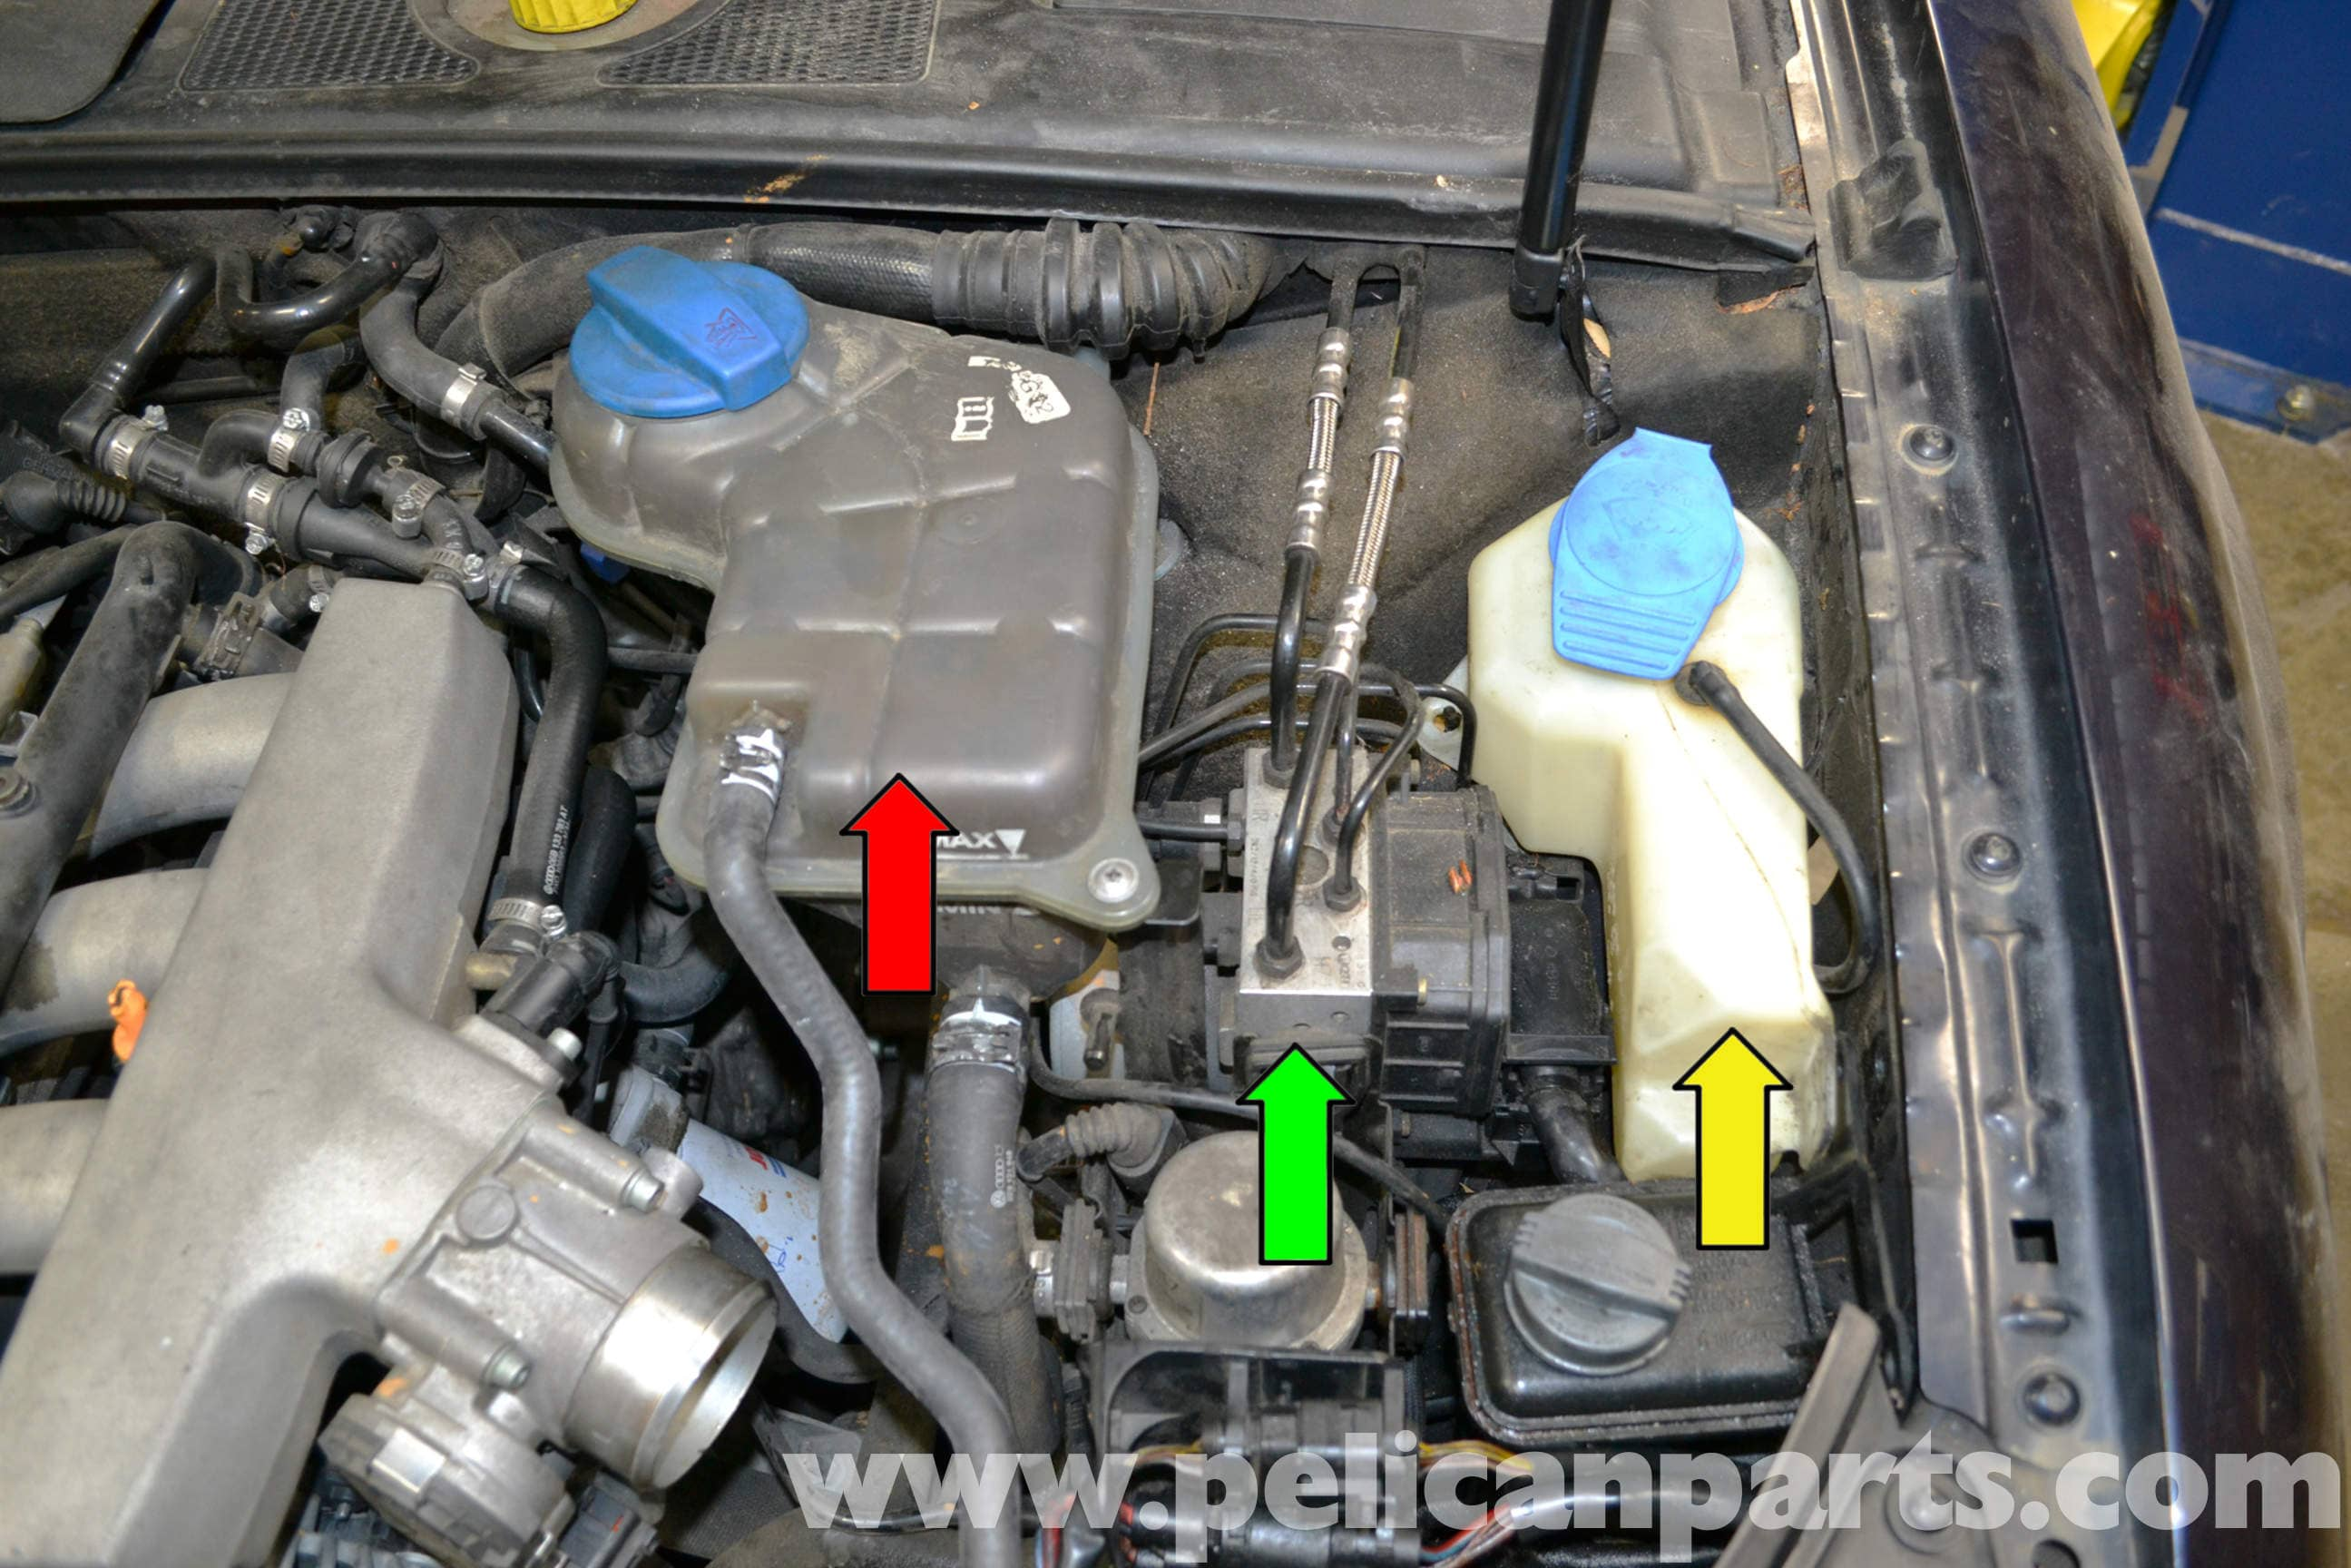 B1792B Audi A3 Fuse Box Location 1999 | Wiring Resources on audi a3 oil cooler, 2001 audi tt fuse box, audi a3 starter, audi a3 thermostat housing, audi a3 horn, audi a3 speedometer, audi a3 glove box, audi rs6 fuse box, audi a3 rear hatch, audi r8 fuse box, audi q7 fuse diagram, audi a3 windshield, audi a3 gas cap, audi a3 exhaust manifold, audi b5 fuse box, audi a4 b7 fuse box, audi a3 gas tank, audi a3 frame, audi a3 obd location, audi a3 antenna,